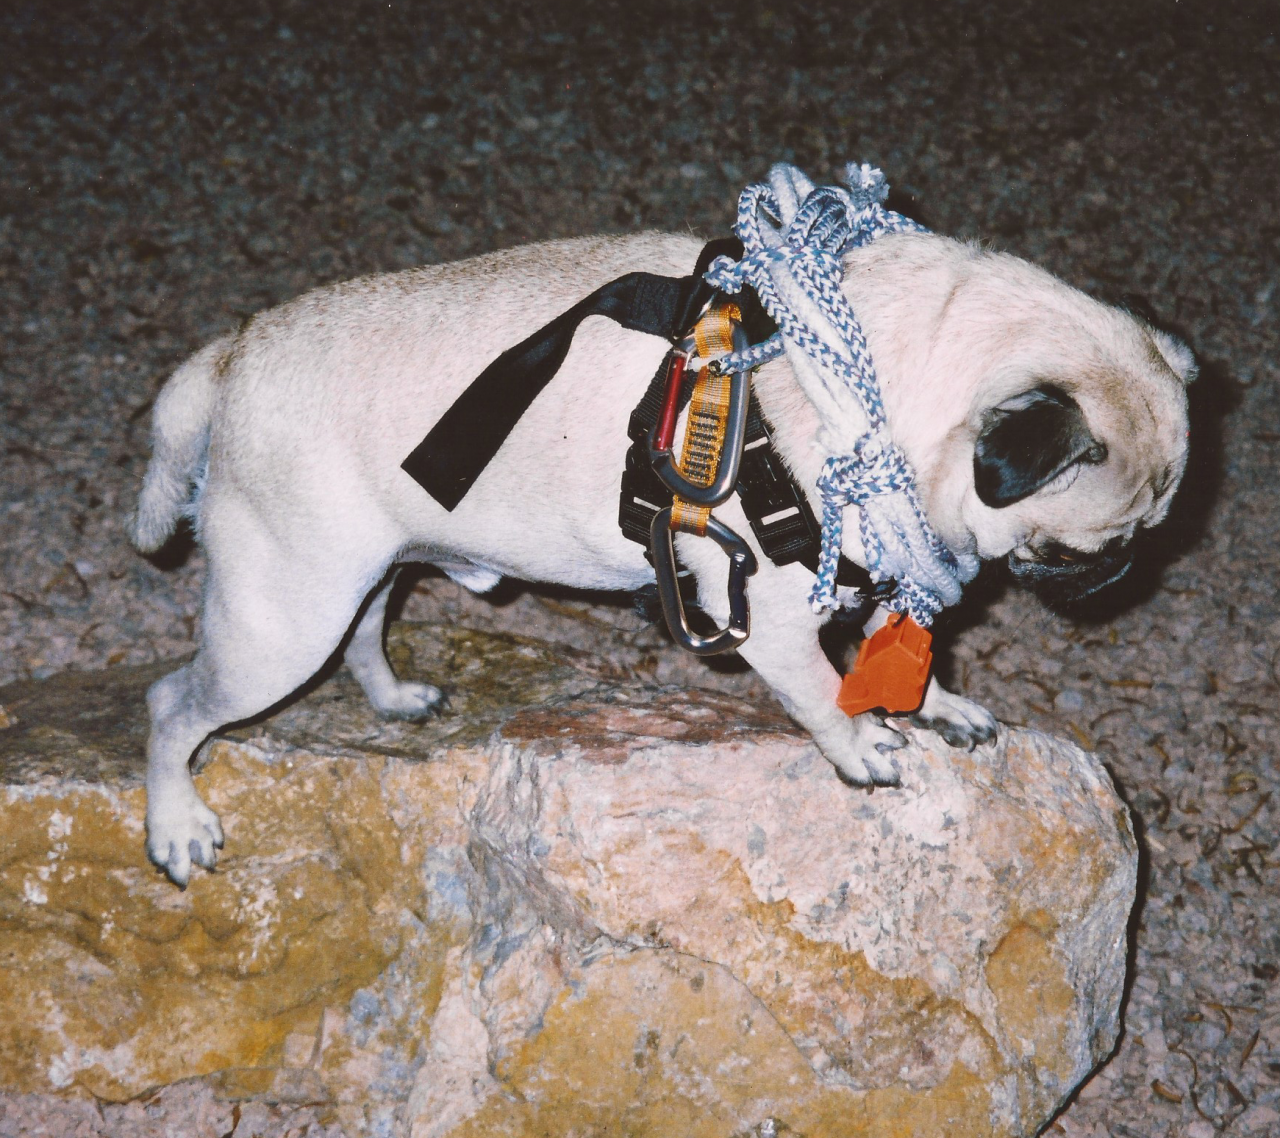 A picture from Phoenix Rock Gym - PRG by Vinny the Pug